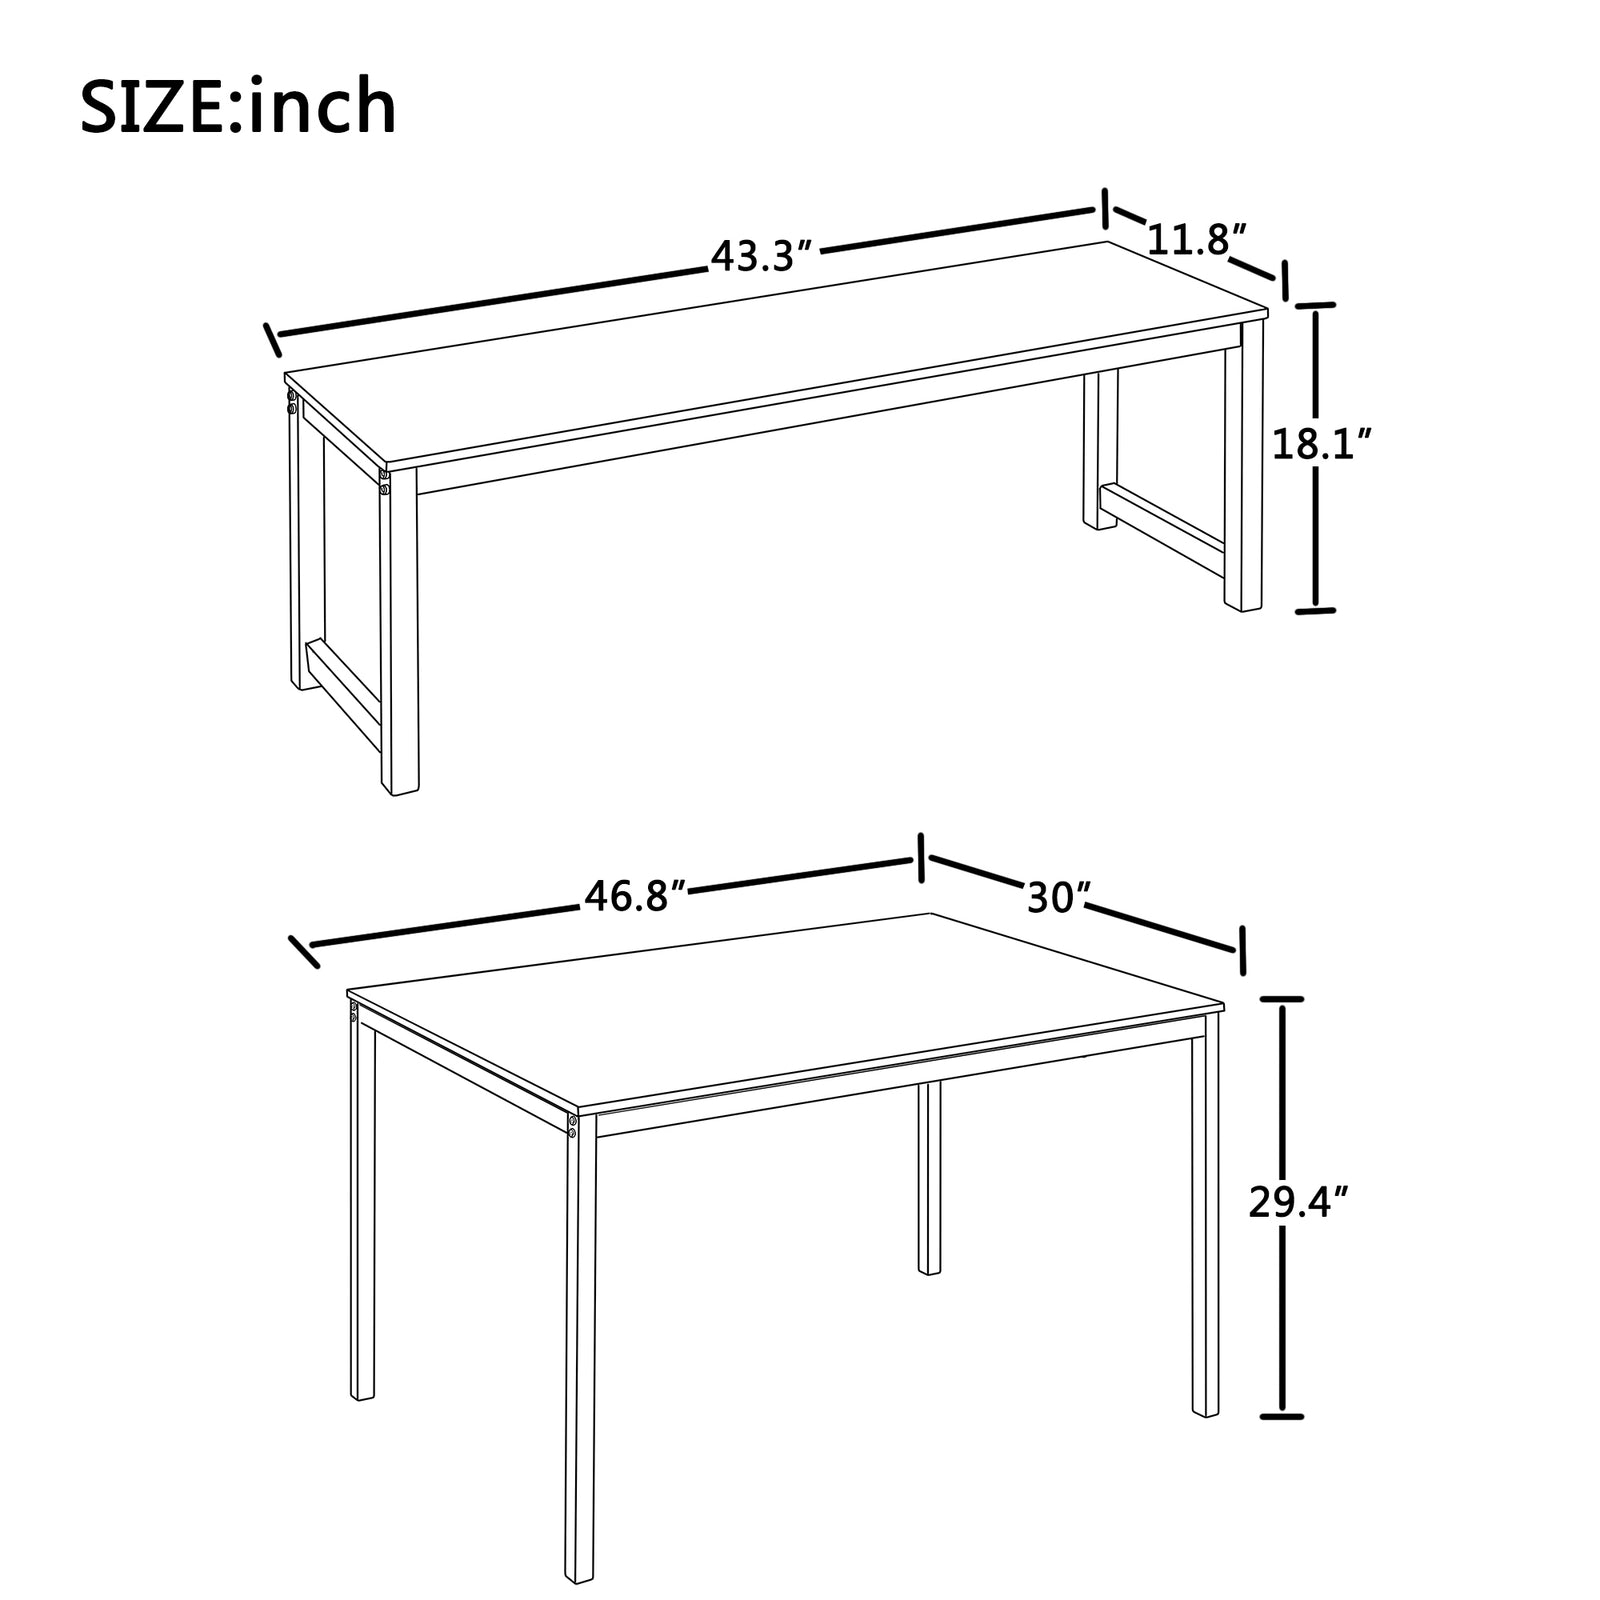 3 Counts - Dining Set with Two benches, Modern Dining Room Furniture - Size